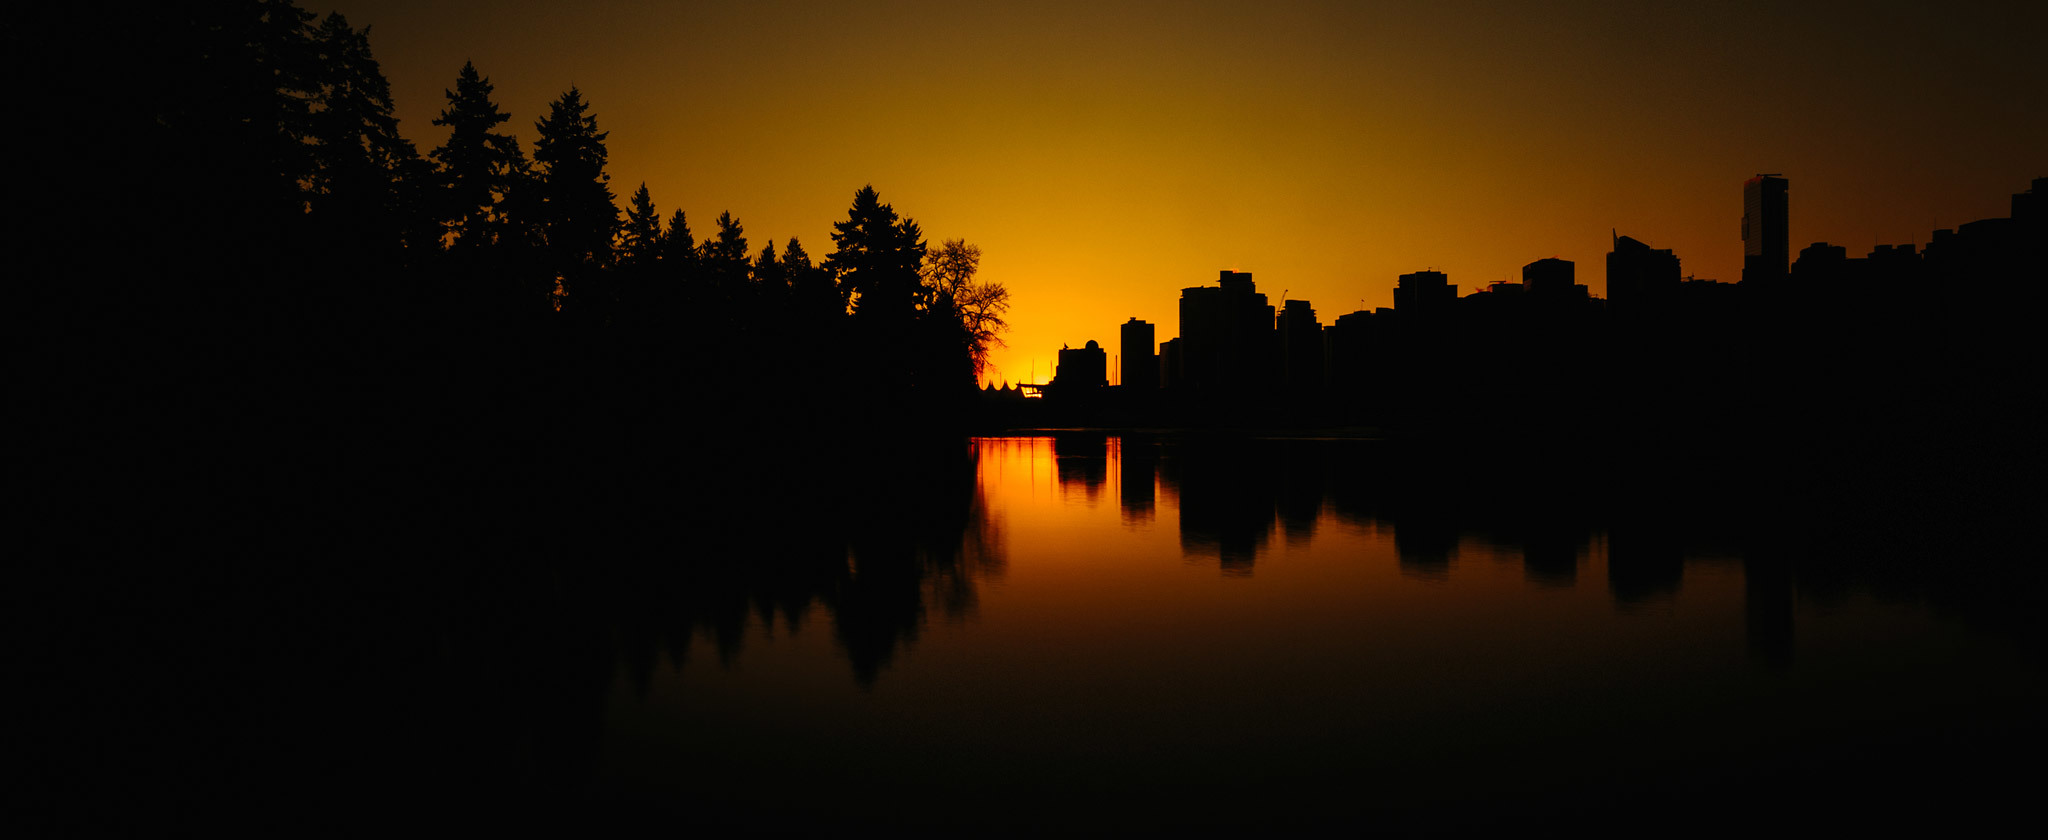 Half and Half. Nature and City. I'm fortunate to call this home. Stanley Park, Vancouver, B.C., Canada